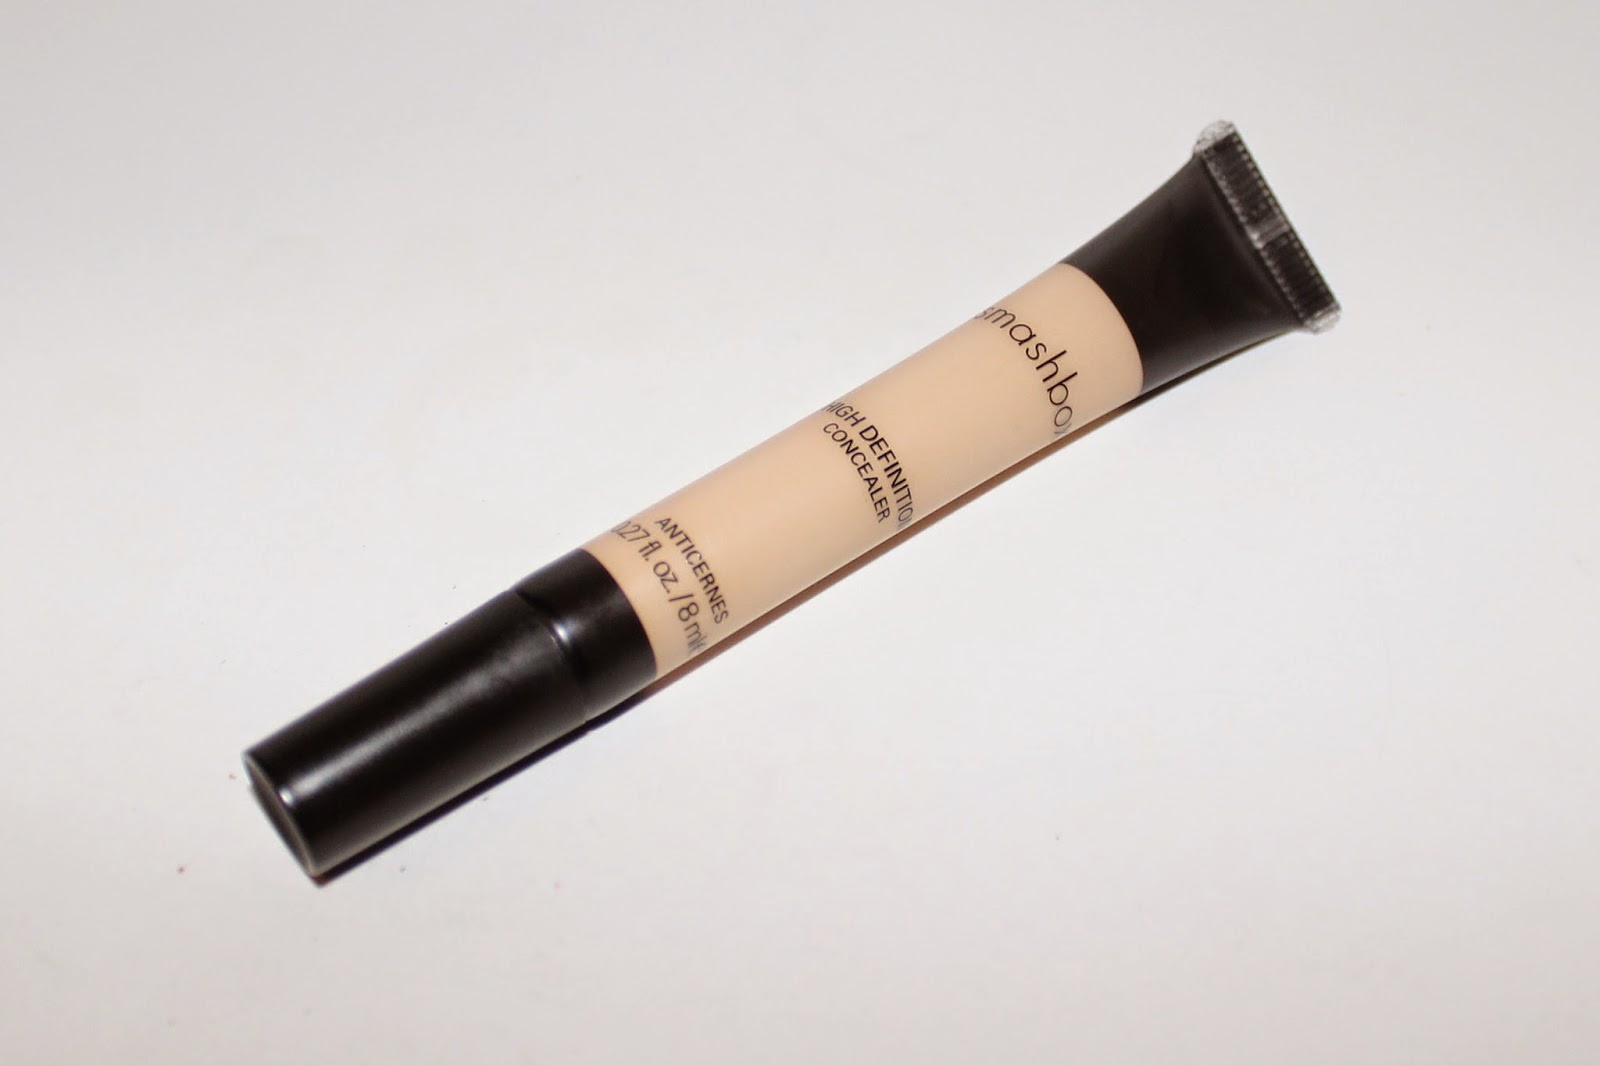 Smashbox High Definition Concealer in Fair/Light